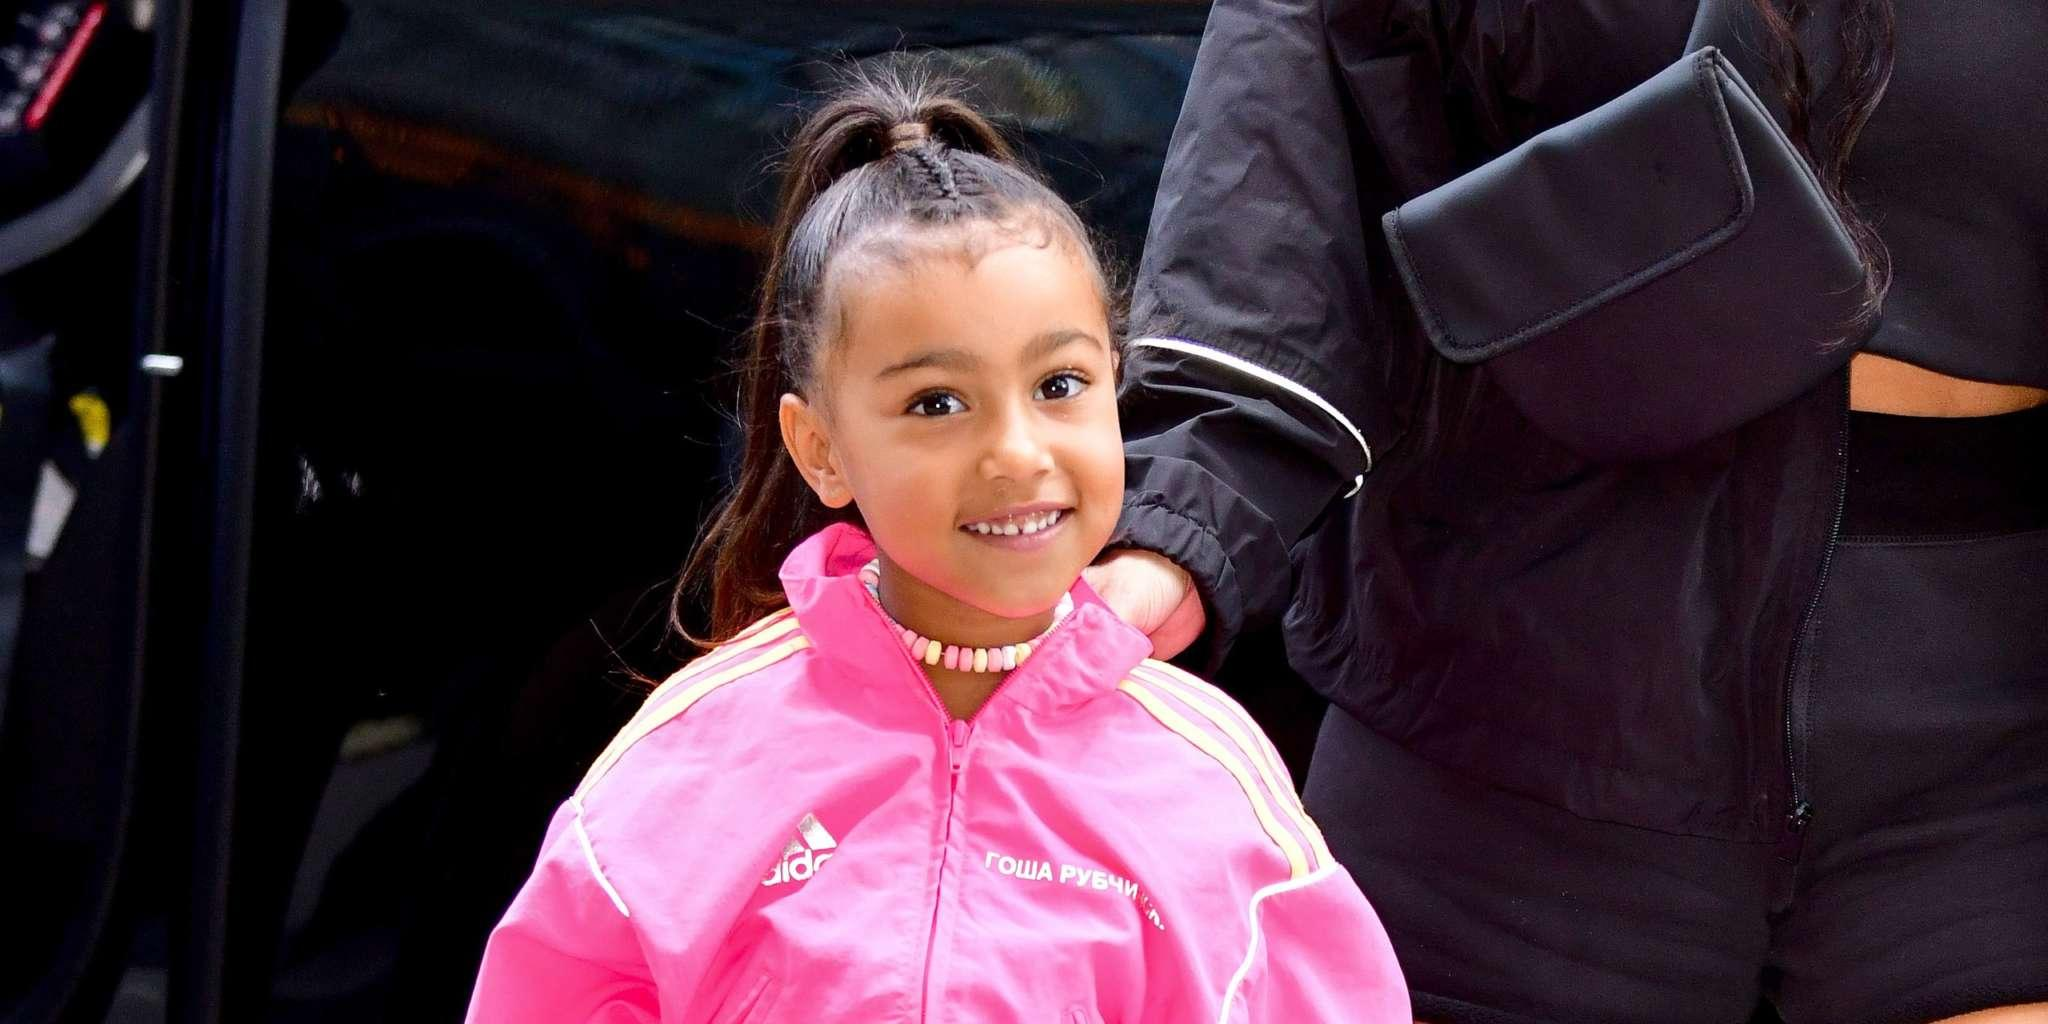 KUWK: North West Rocks Septum Ring At Sunday Service - Check Out The Pic!